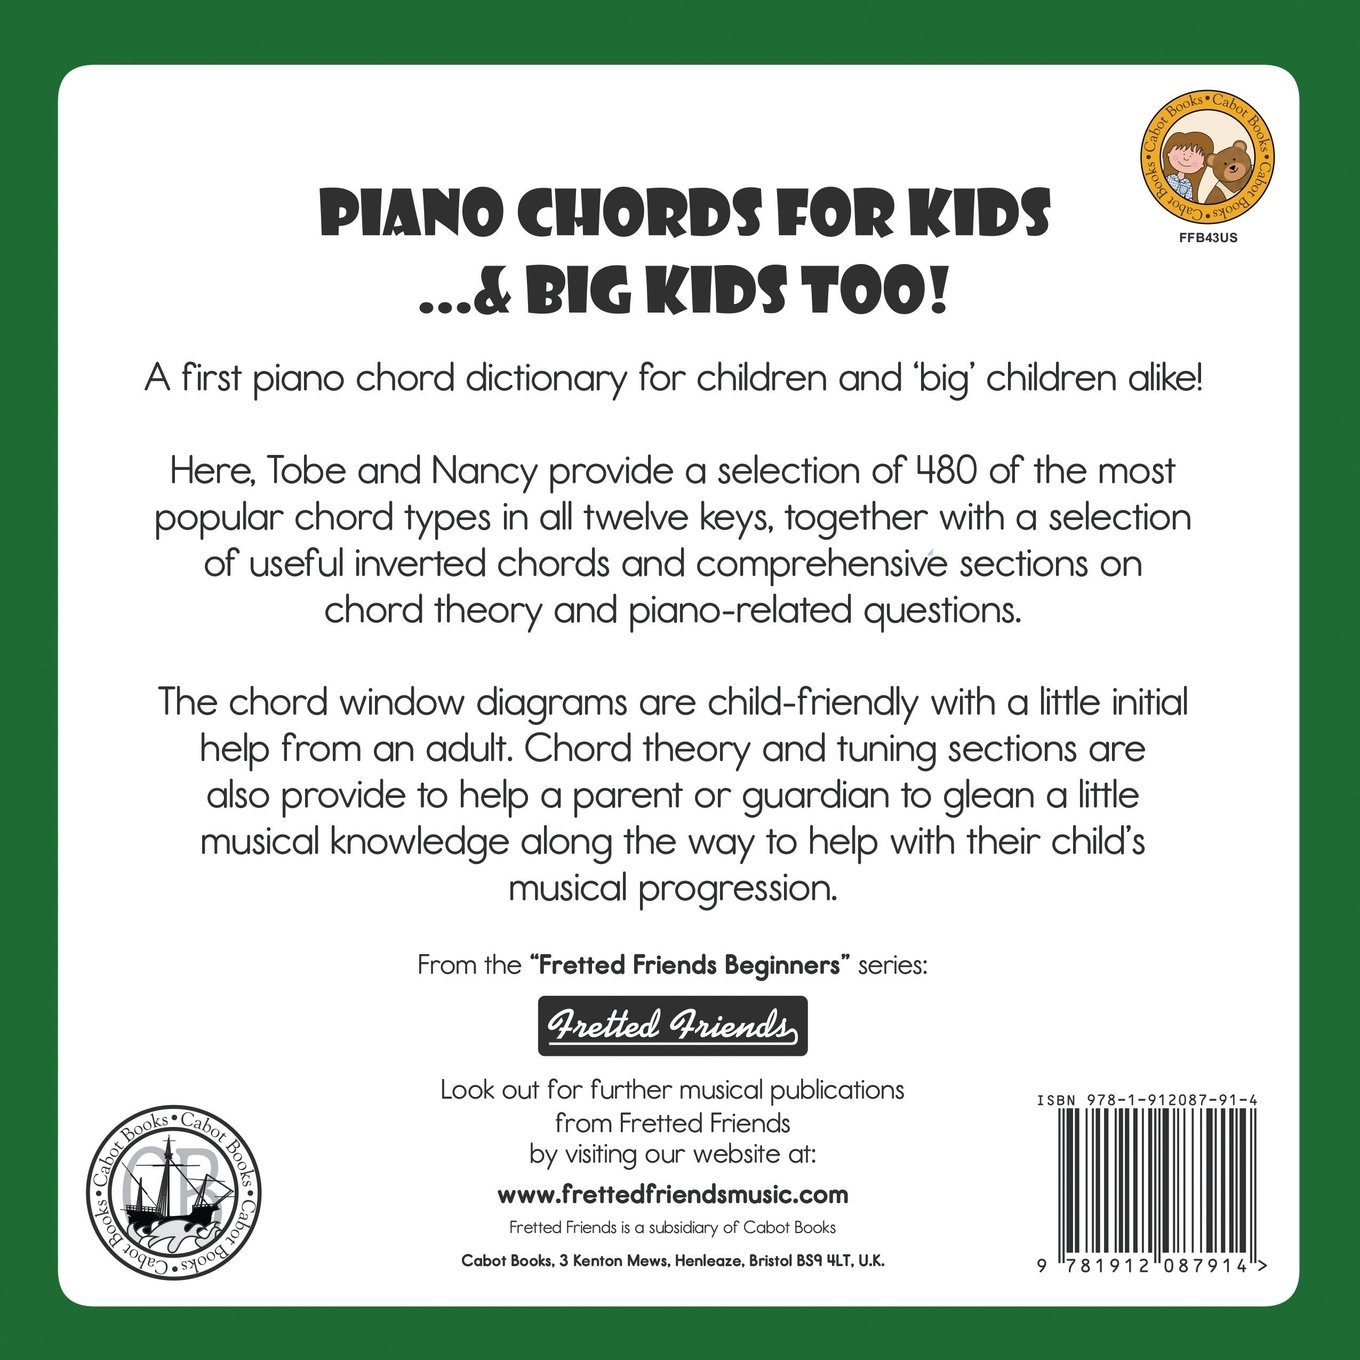 Piano chords for kids big kids too fretted friends piano chords for kids big kids too fretted friends beginnners series tobe a richards nancy eriksson 9781912087914 amazon books hexwebz Images